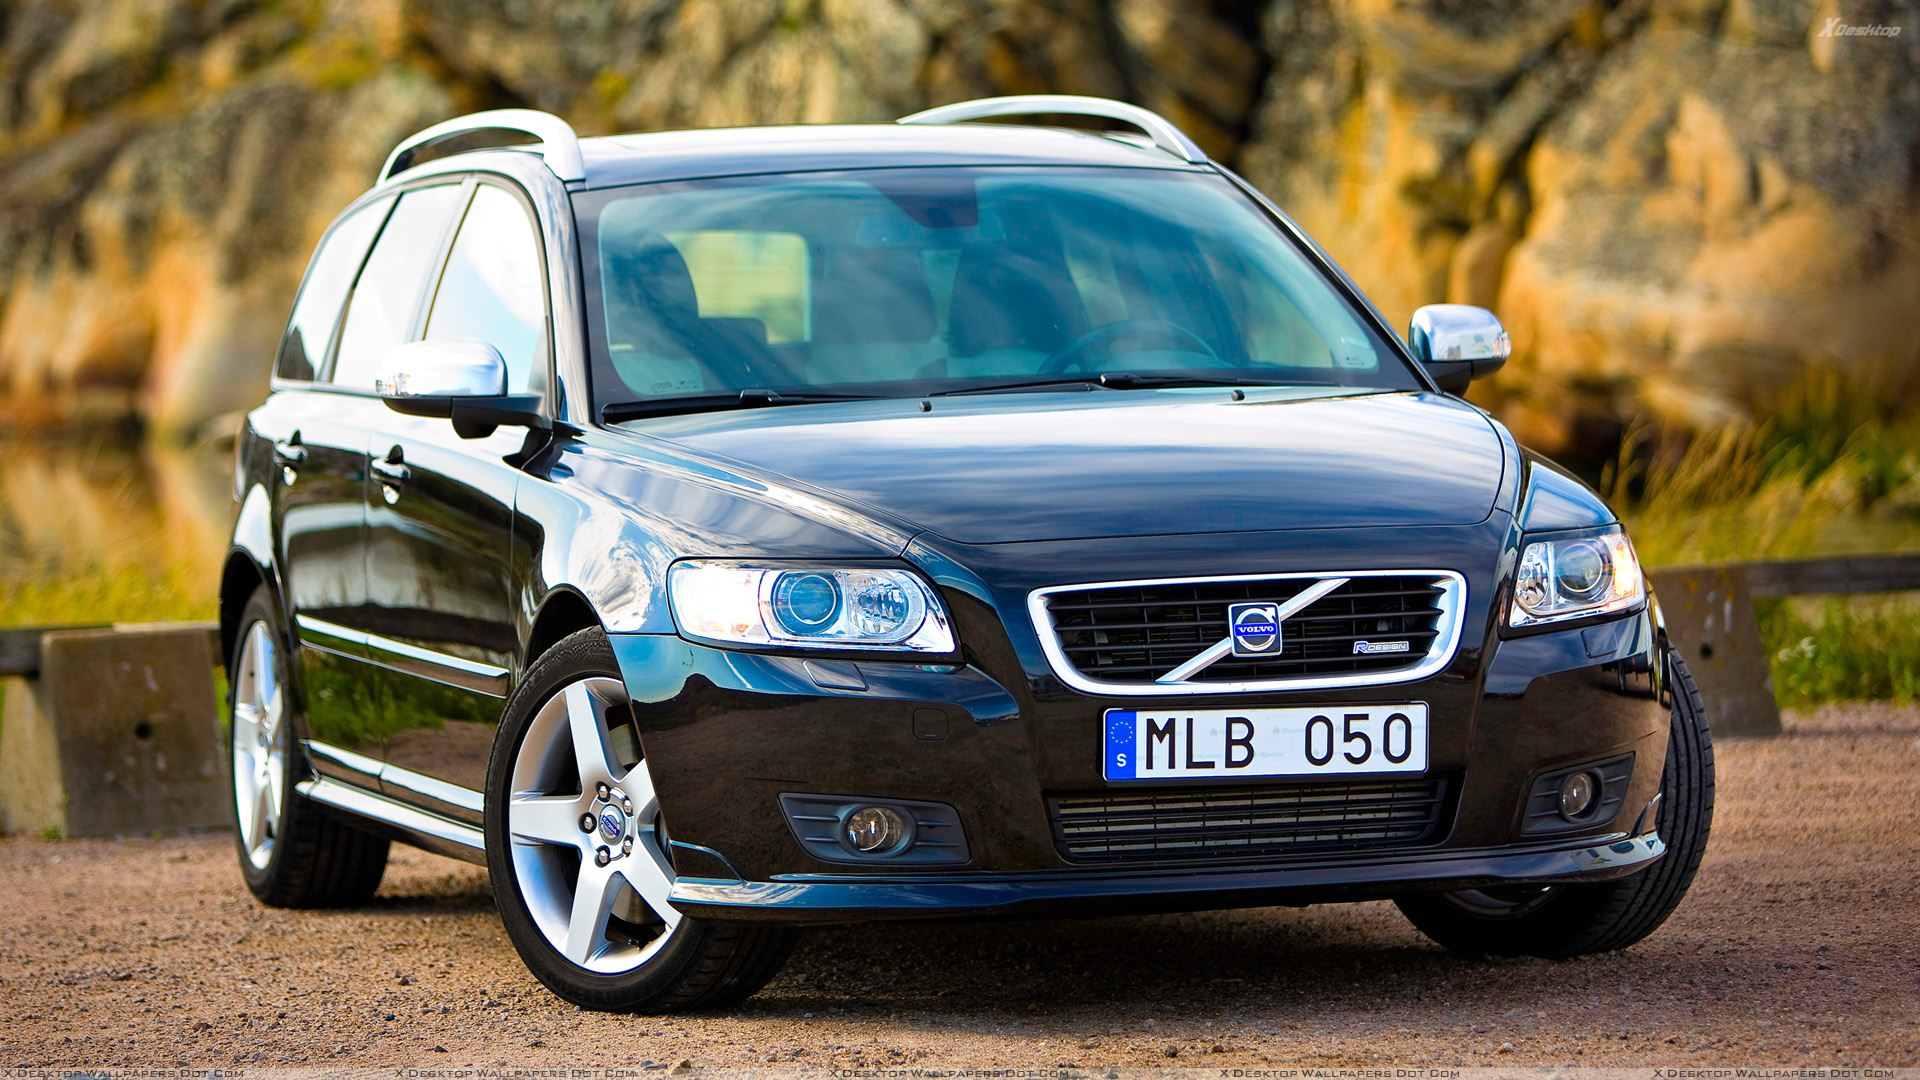 volvo v50 wallpapers photos images in hd